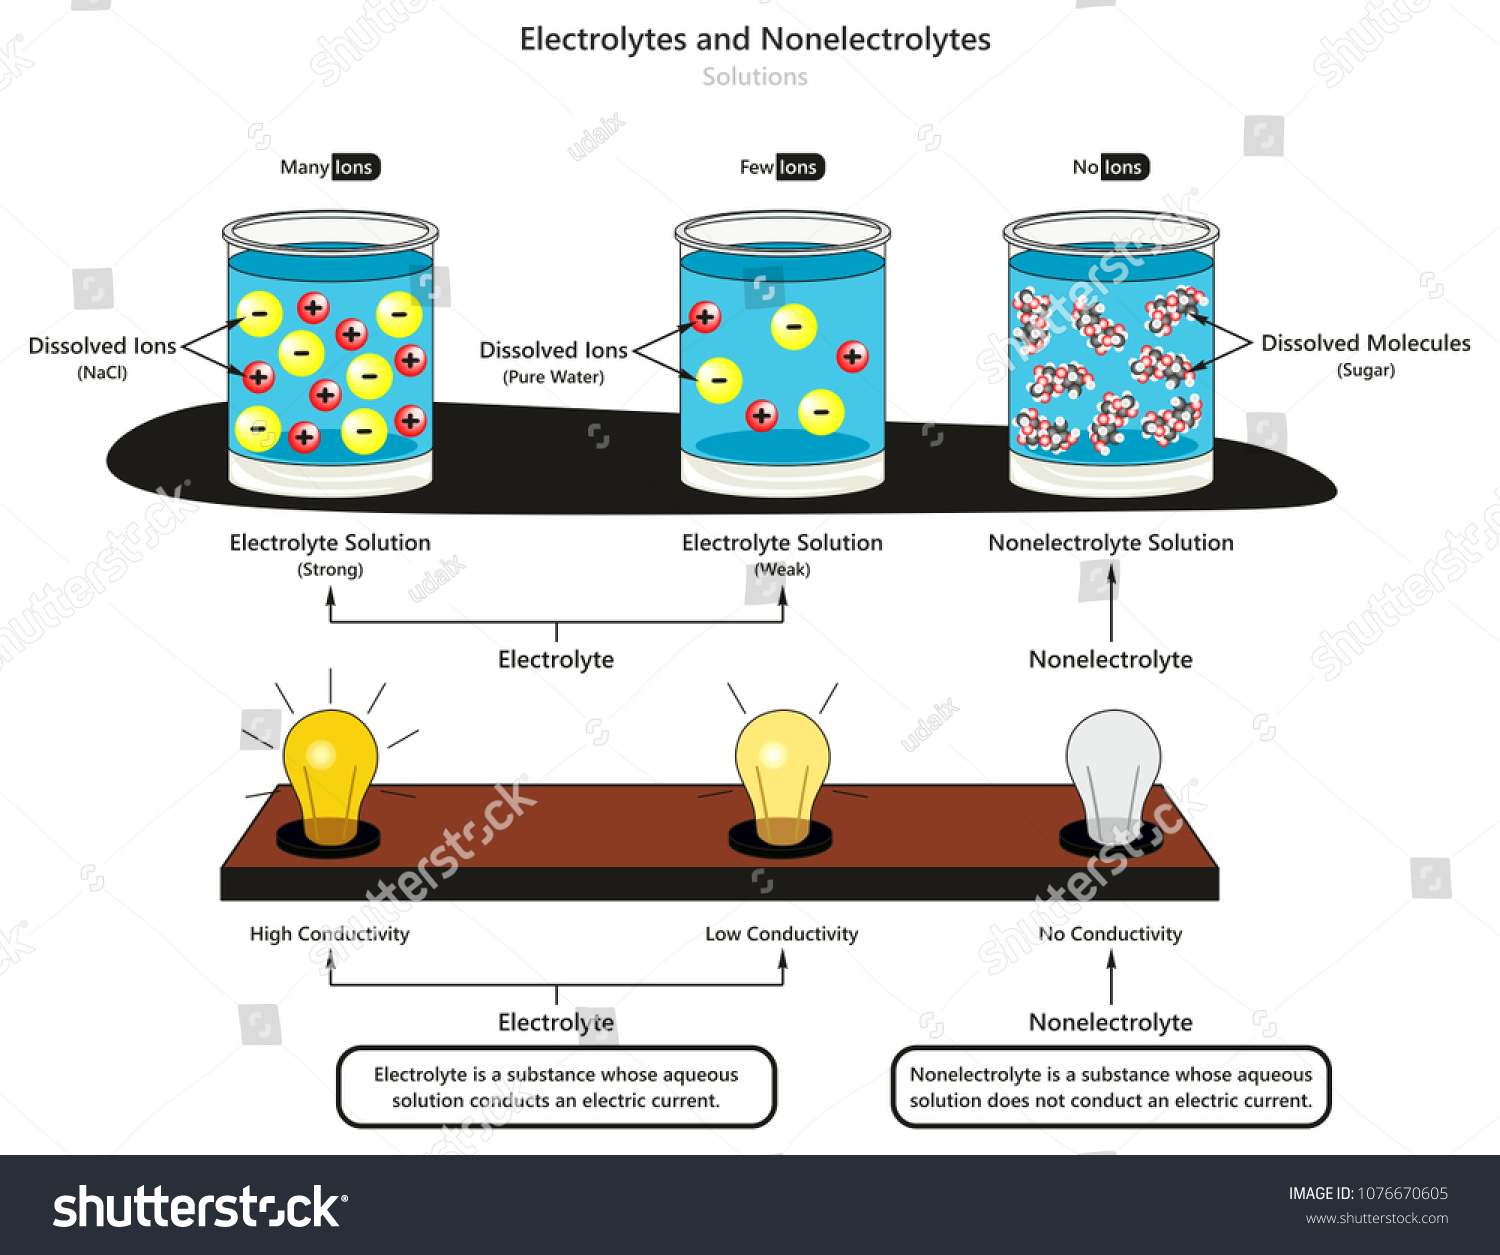 Electrolyte Nonelectrolyte Solutions Infographic Diagram Showing Stock Illustration 1076670605